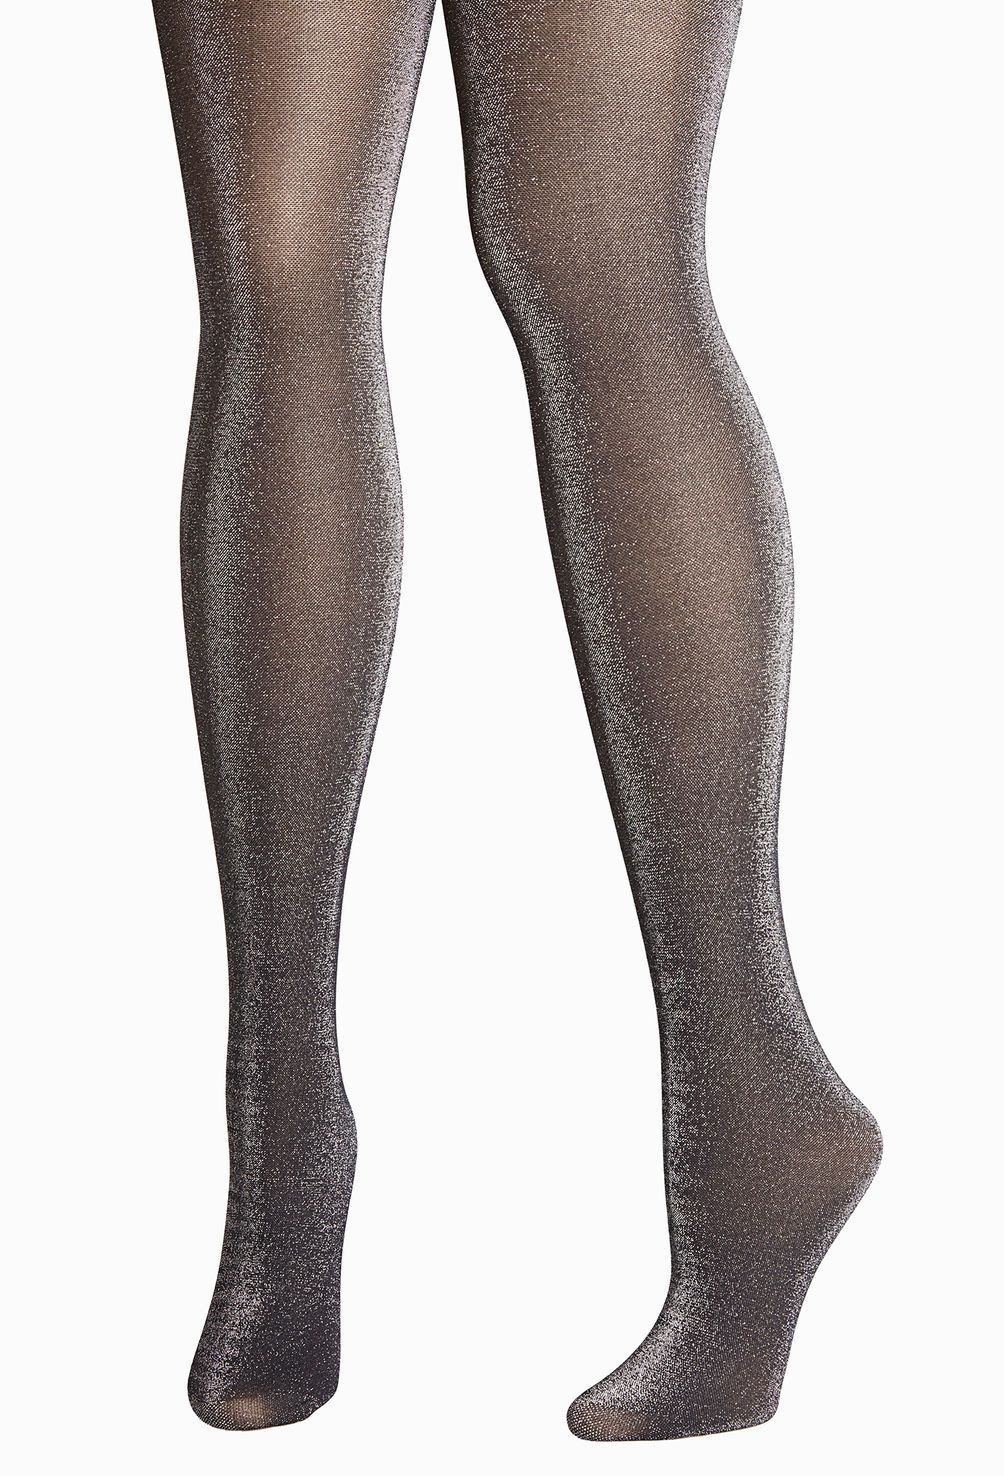 90e6edf708b4e Lurex Tights-Plus Size Tights-Avenue | Hosiery | Plus size tights ...